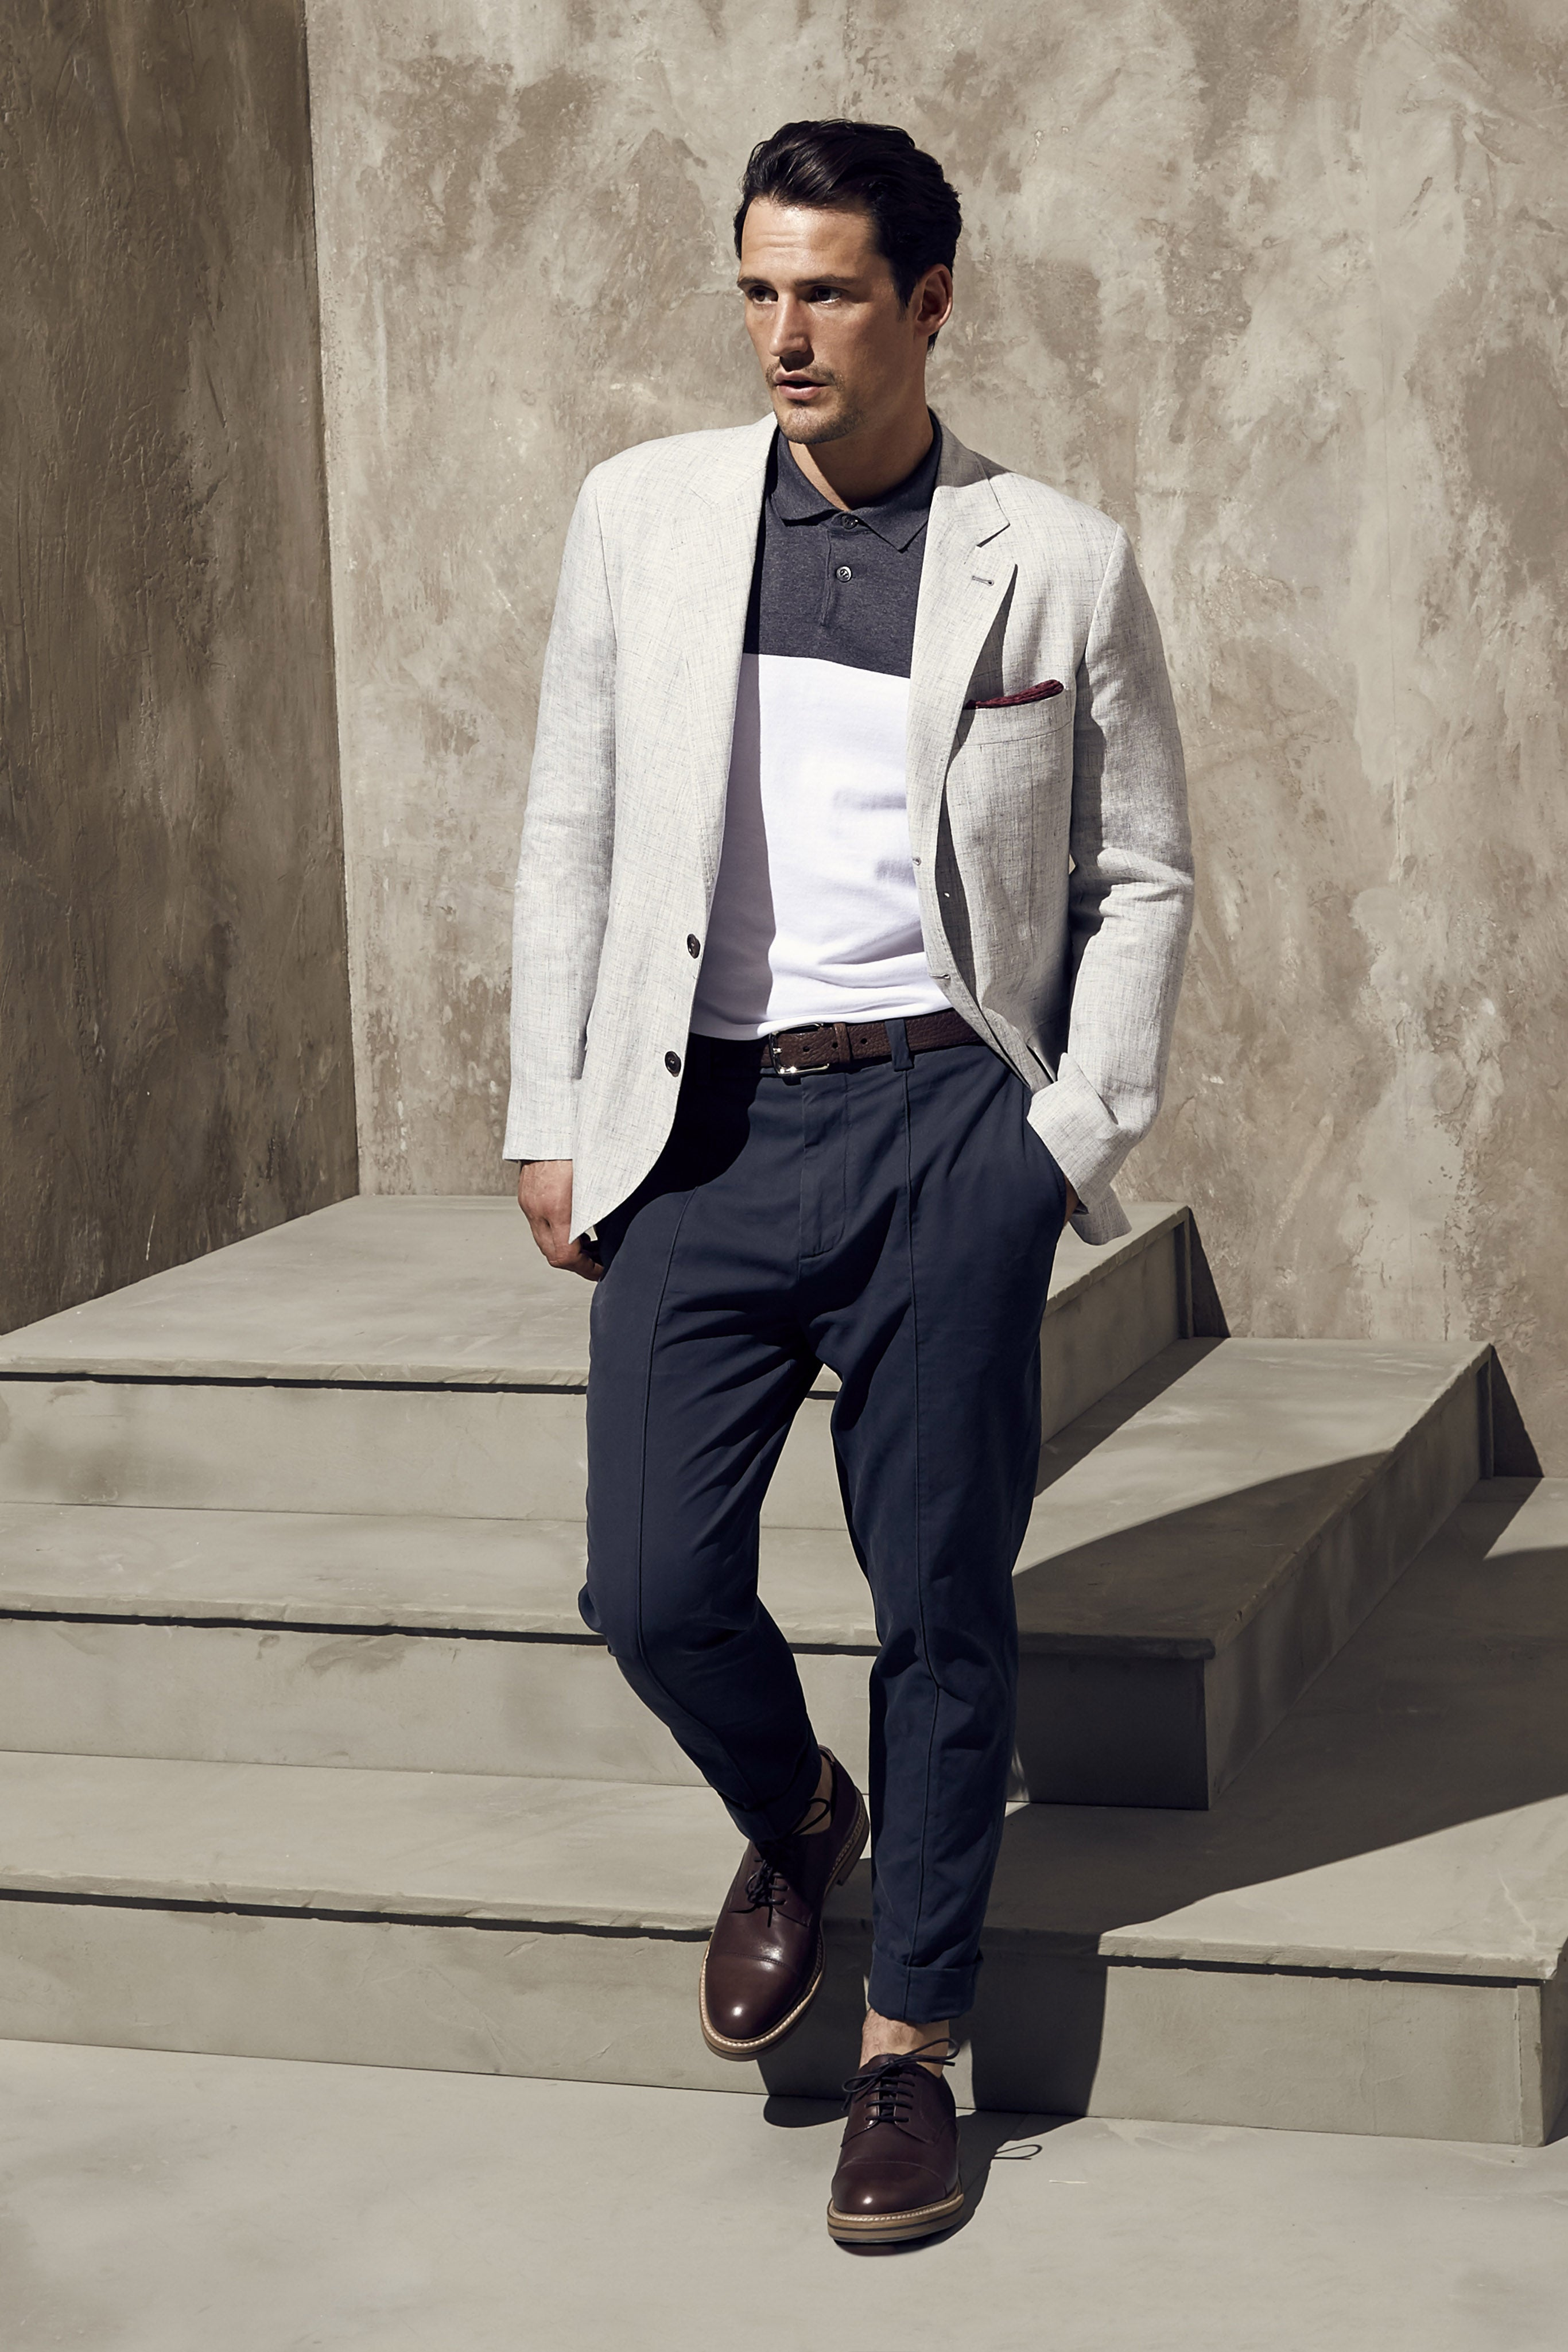 1e6b5529a9 Whether you're dressing up or down, Brunello Cucinelli's range of menswear  made of fine fabrics such as linen, wool and silk, layered with soft layers  and ...